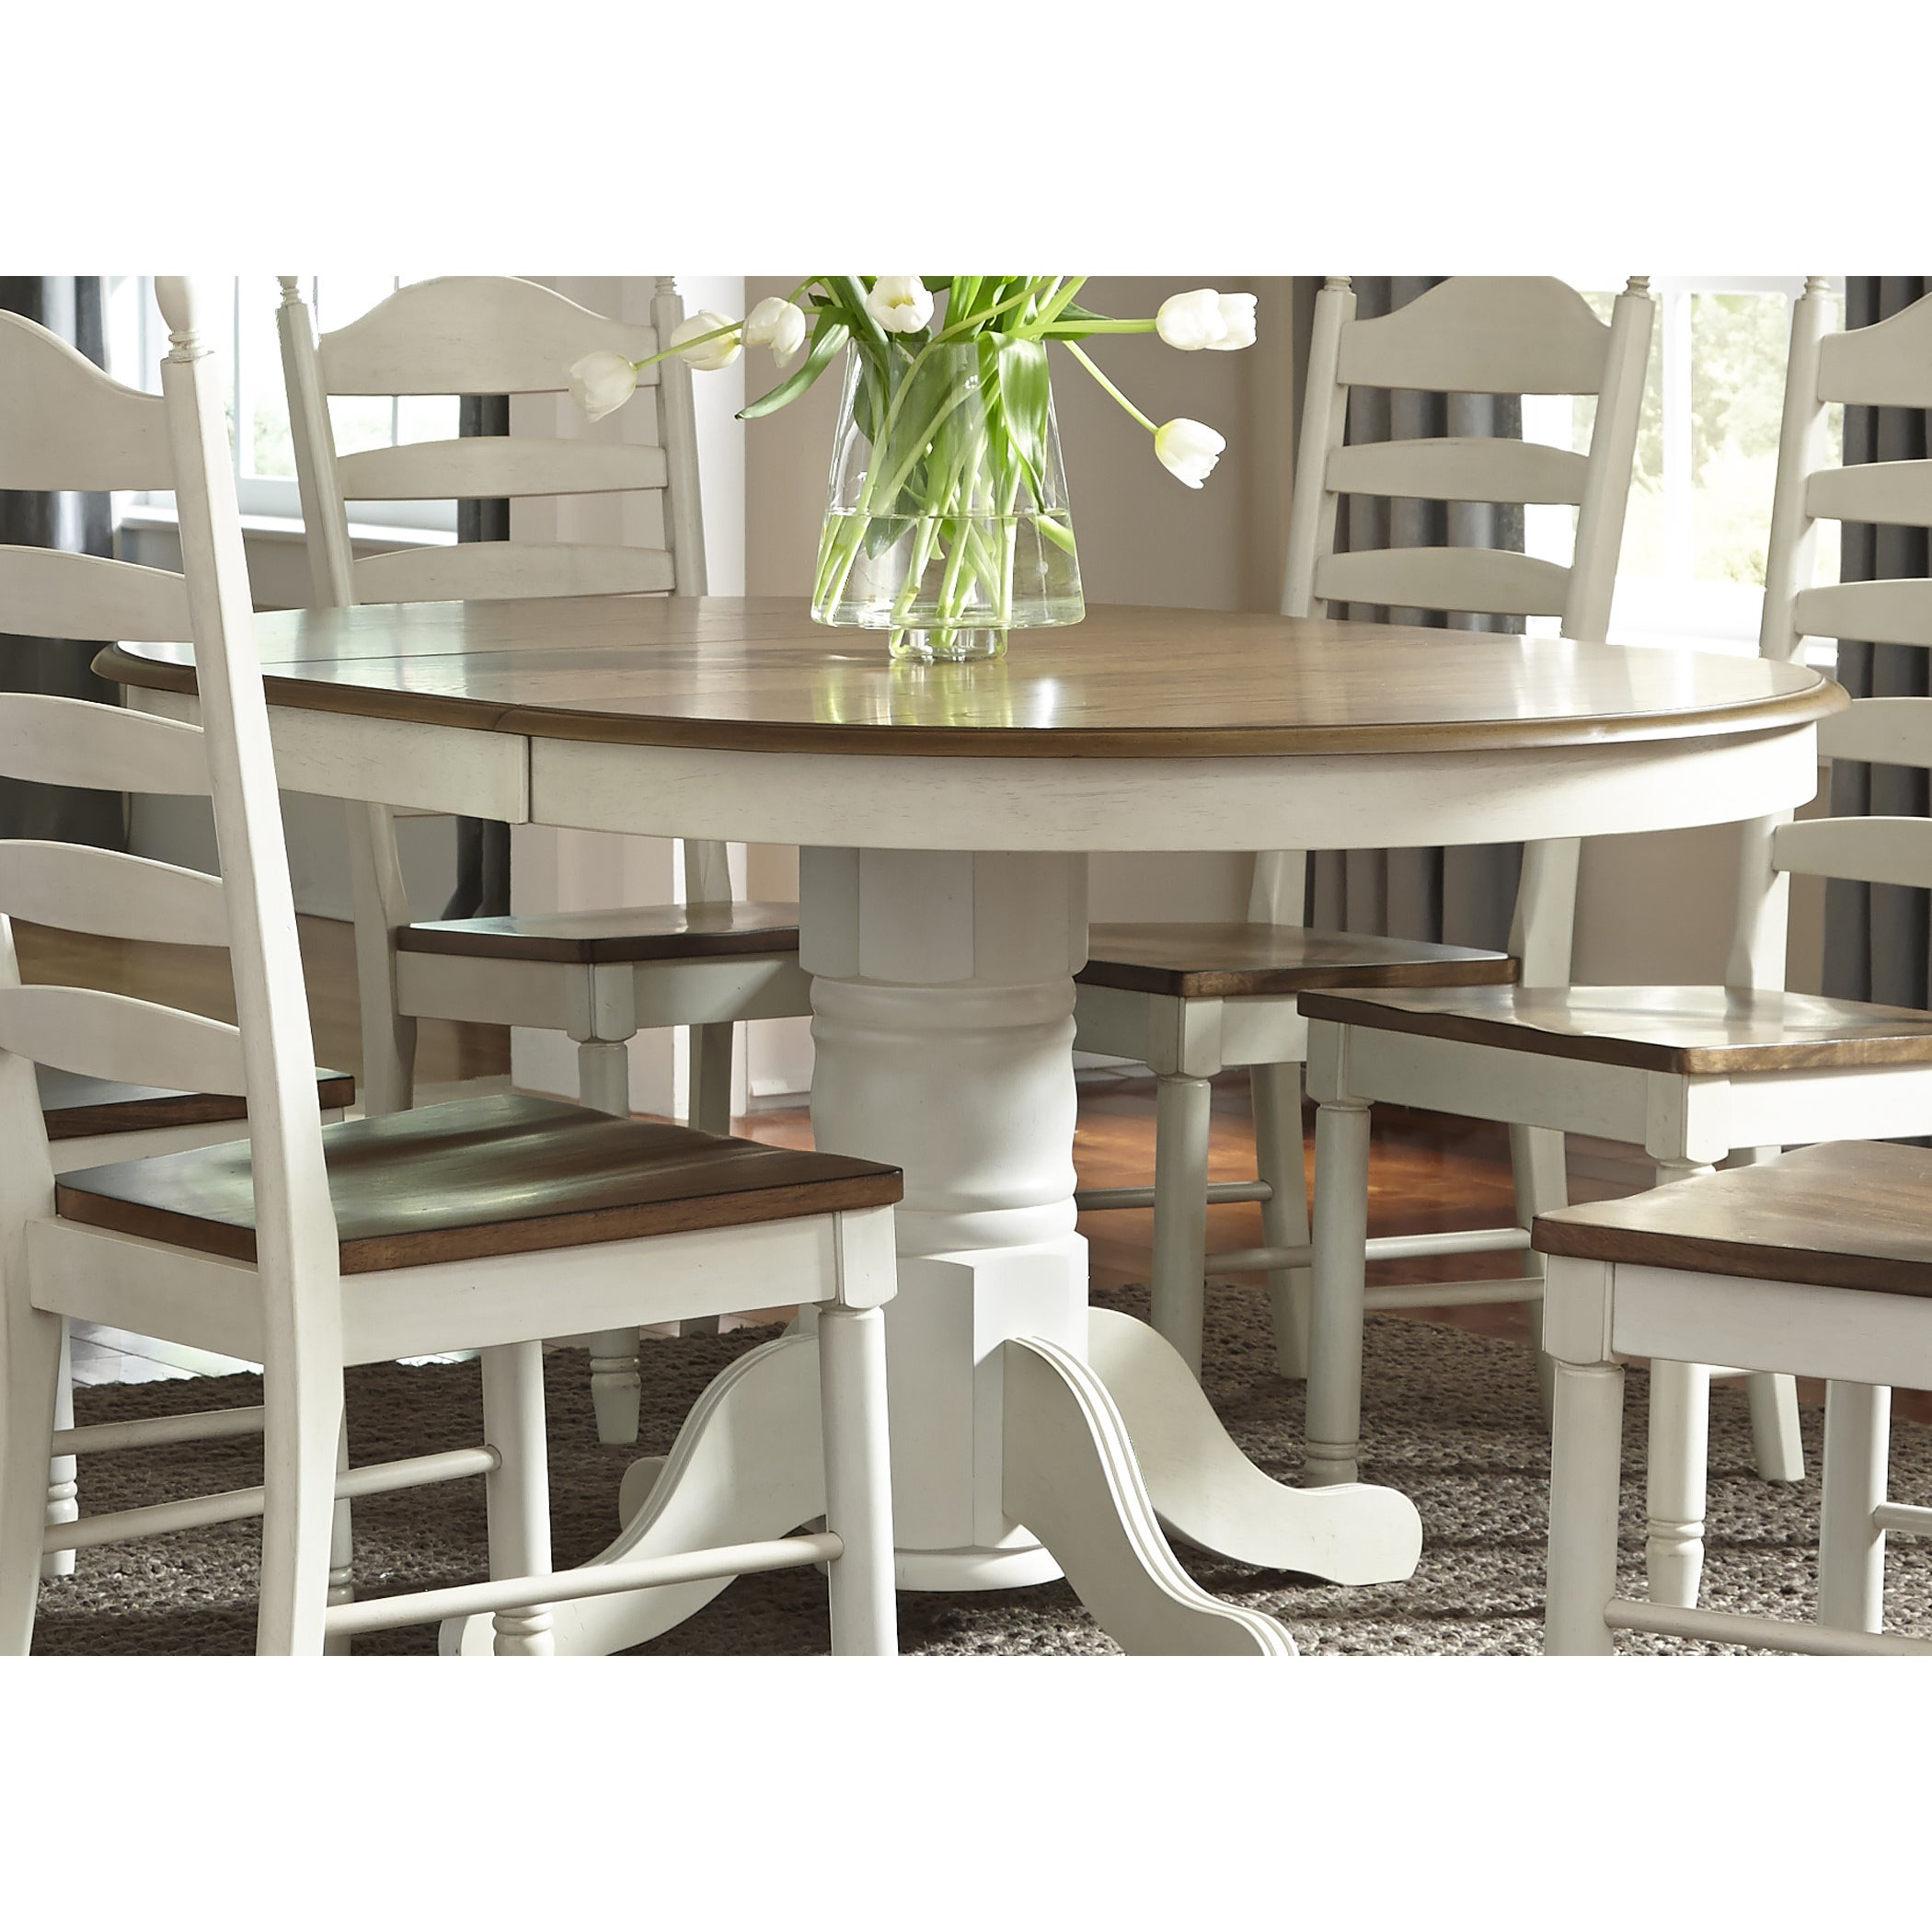 2020 Cincinnati 3 Piece Dining Sets Inside Buy Oval Kitchen & Dining Room Tables Online At Overstock (View 14 of 20)